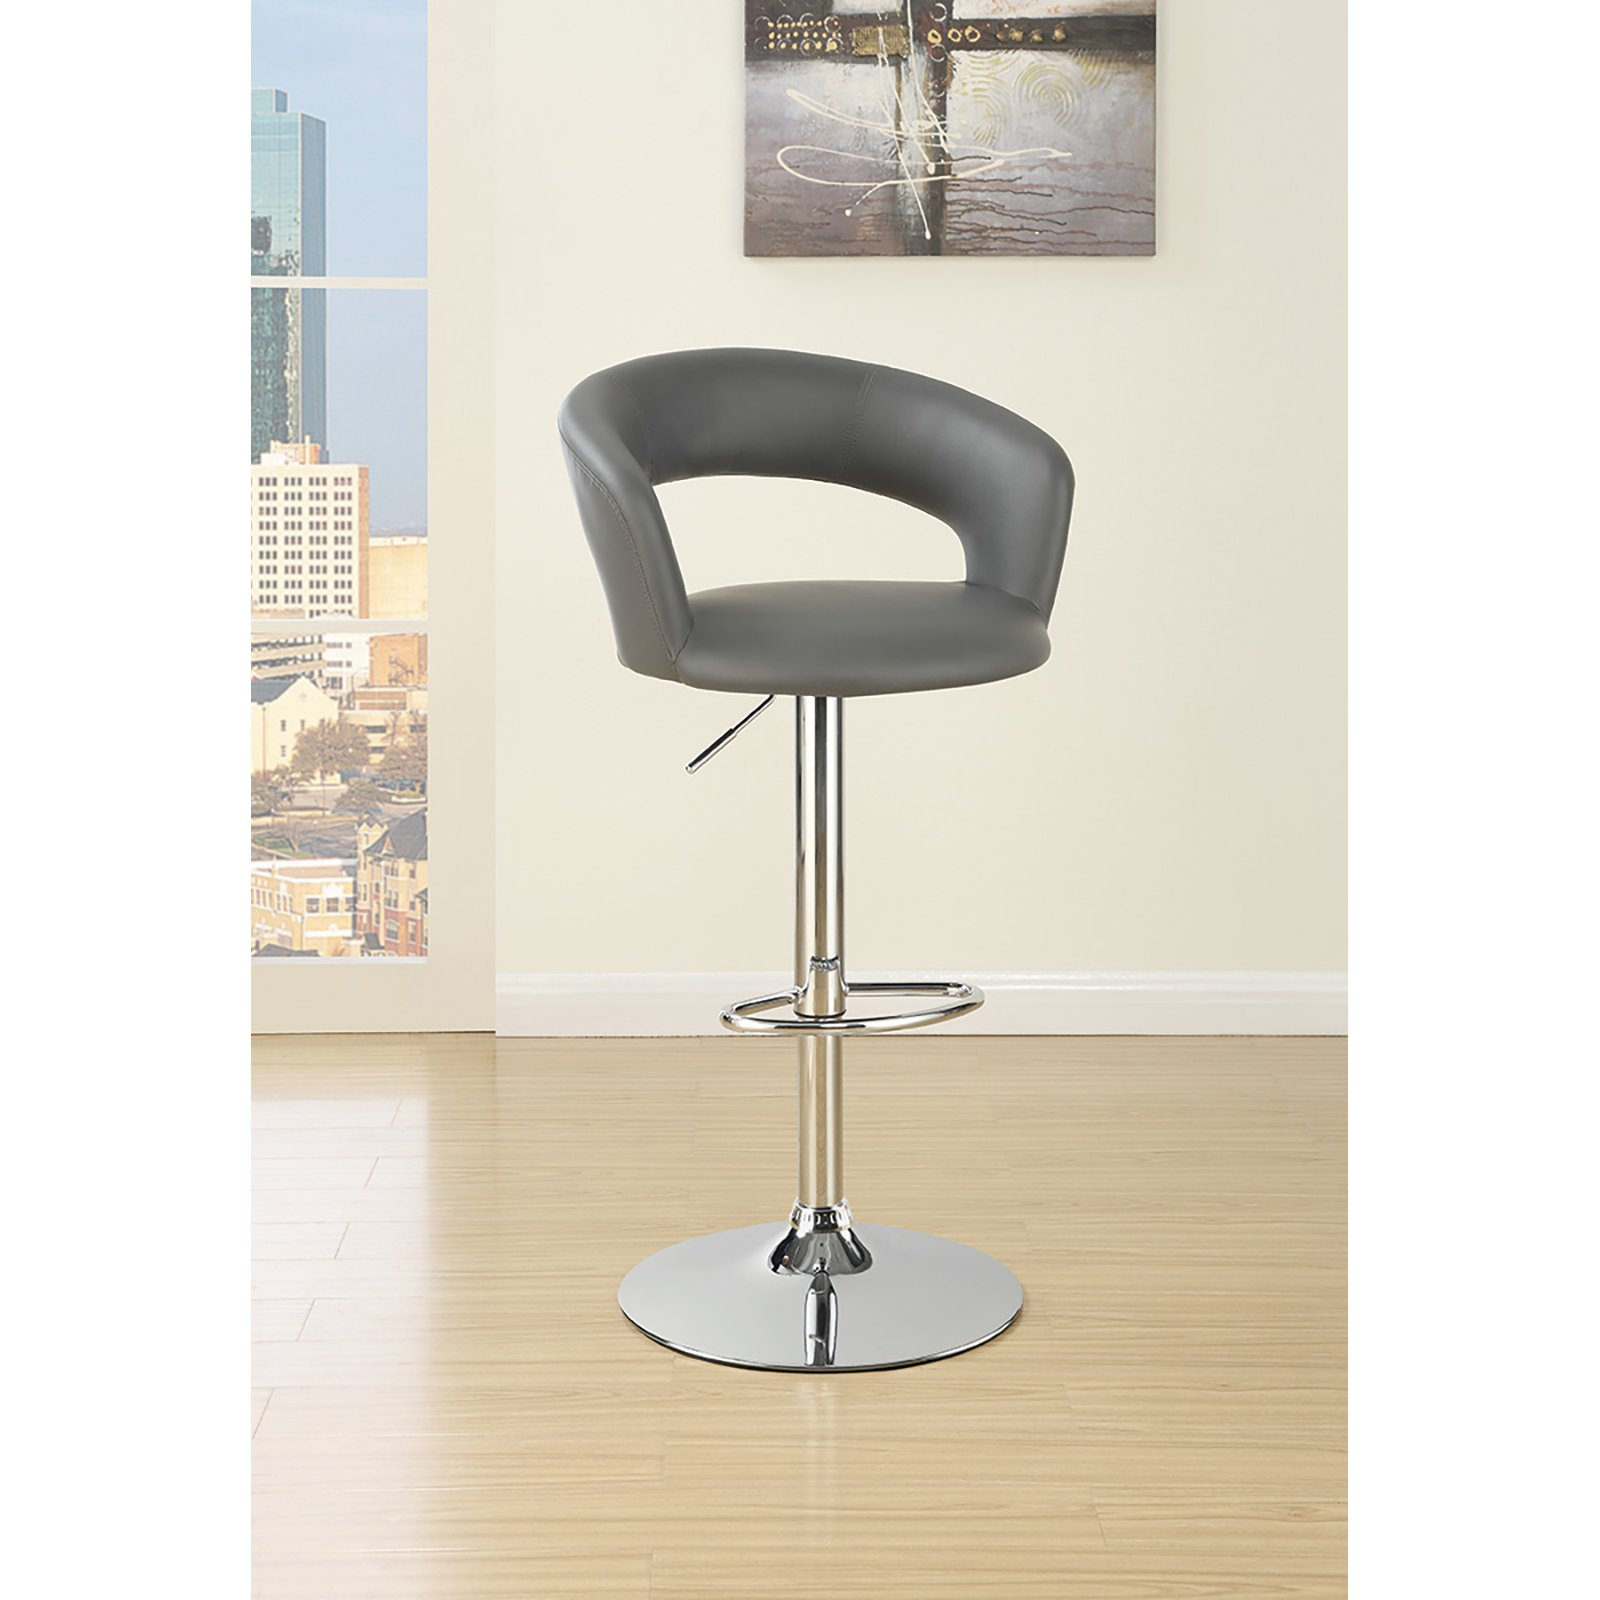 Coaster Furniture Gray 40 in. Adjustable Bar Stool